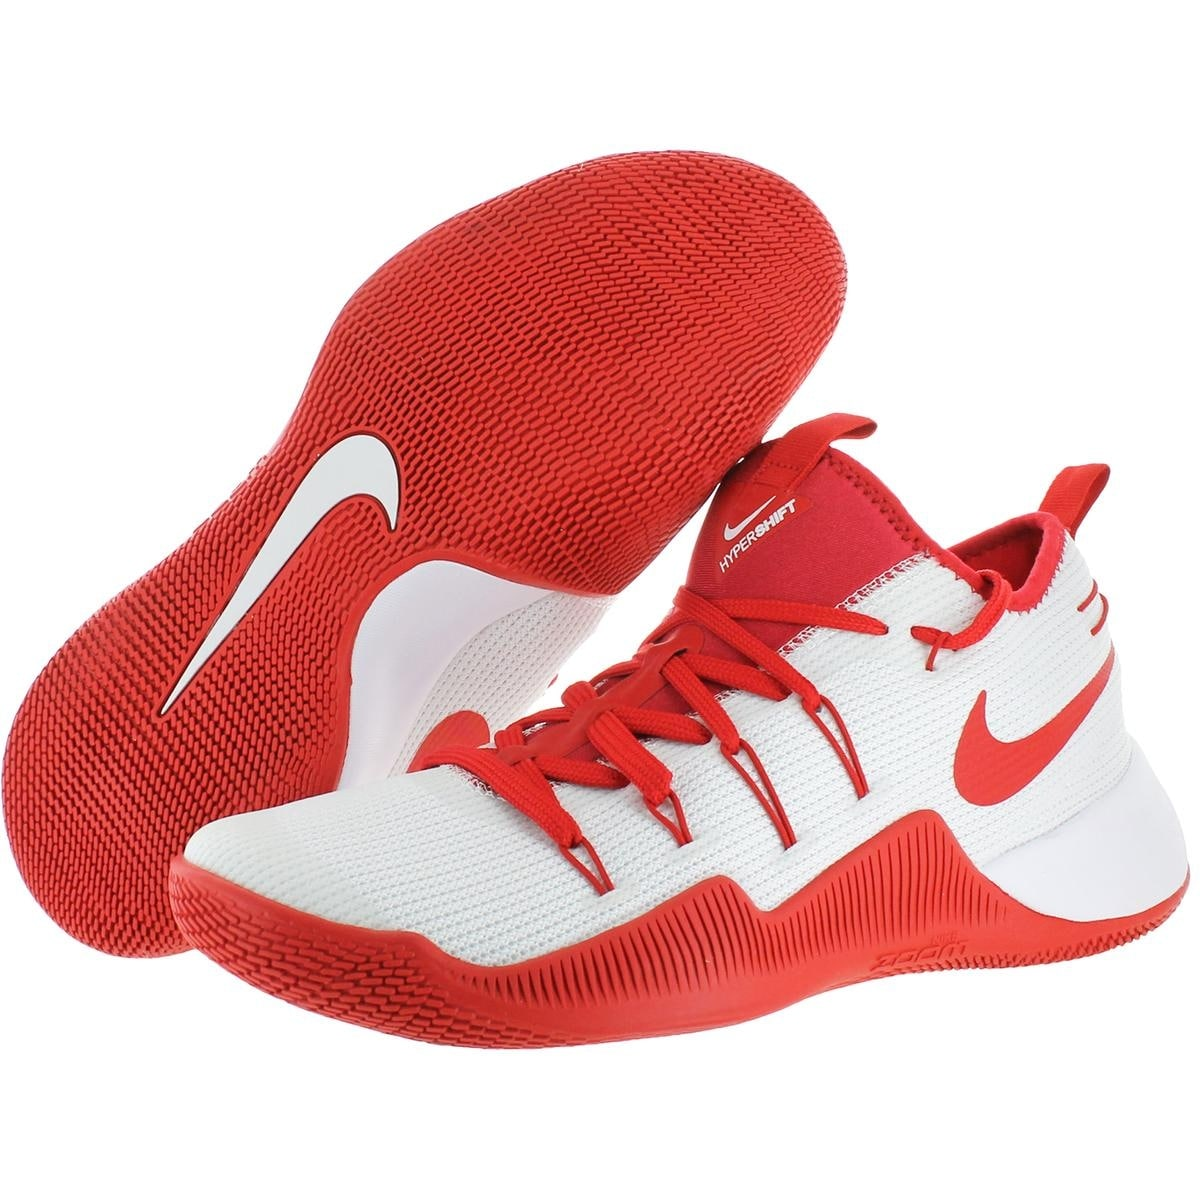 d89b2fa926b Shop Nike Mens Hypershift TB PROMO Basketball Shoes Mid Top Nike Zoom -  Free Shipping On Orders Over $45 - Overstock - 21942603